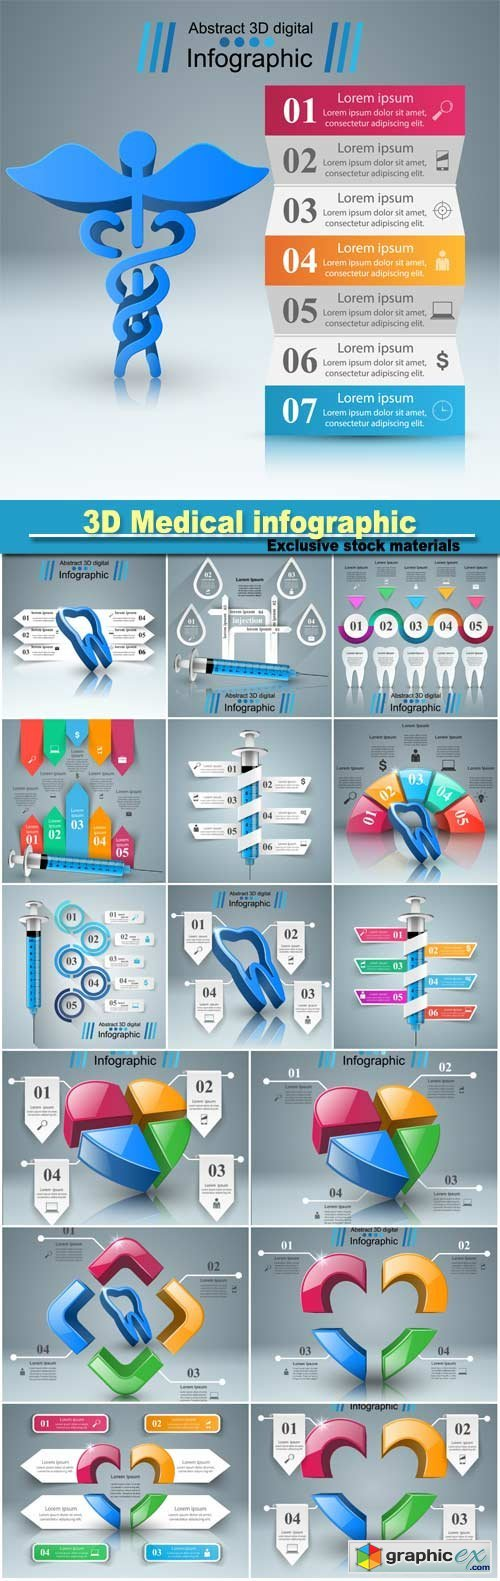 Business Infographics, health icon, 3D Medical infographic